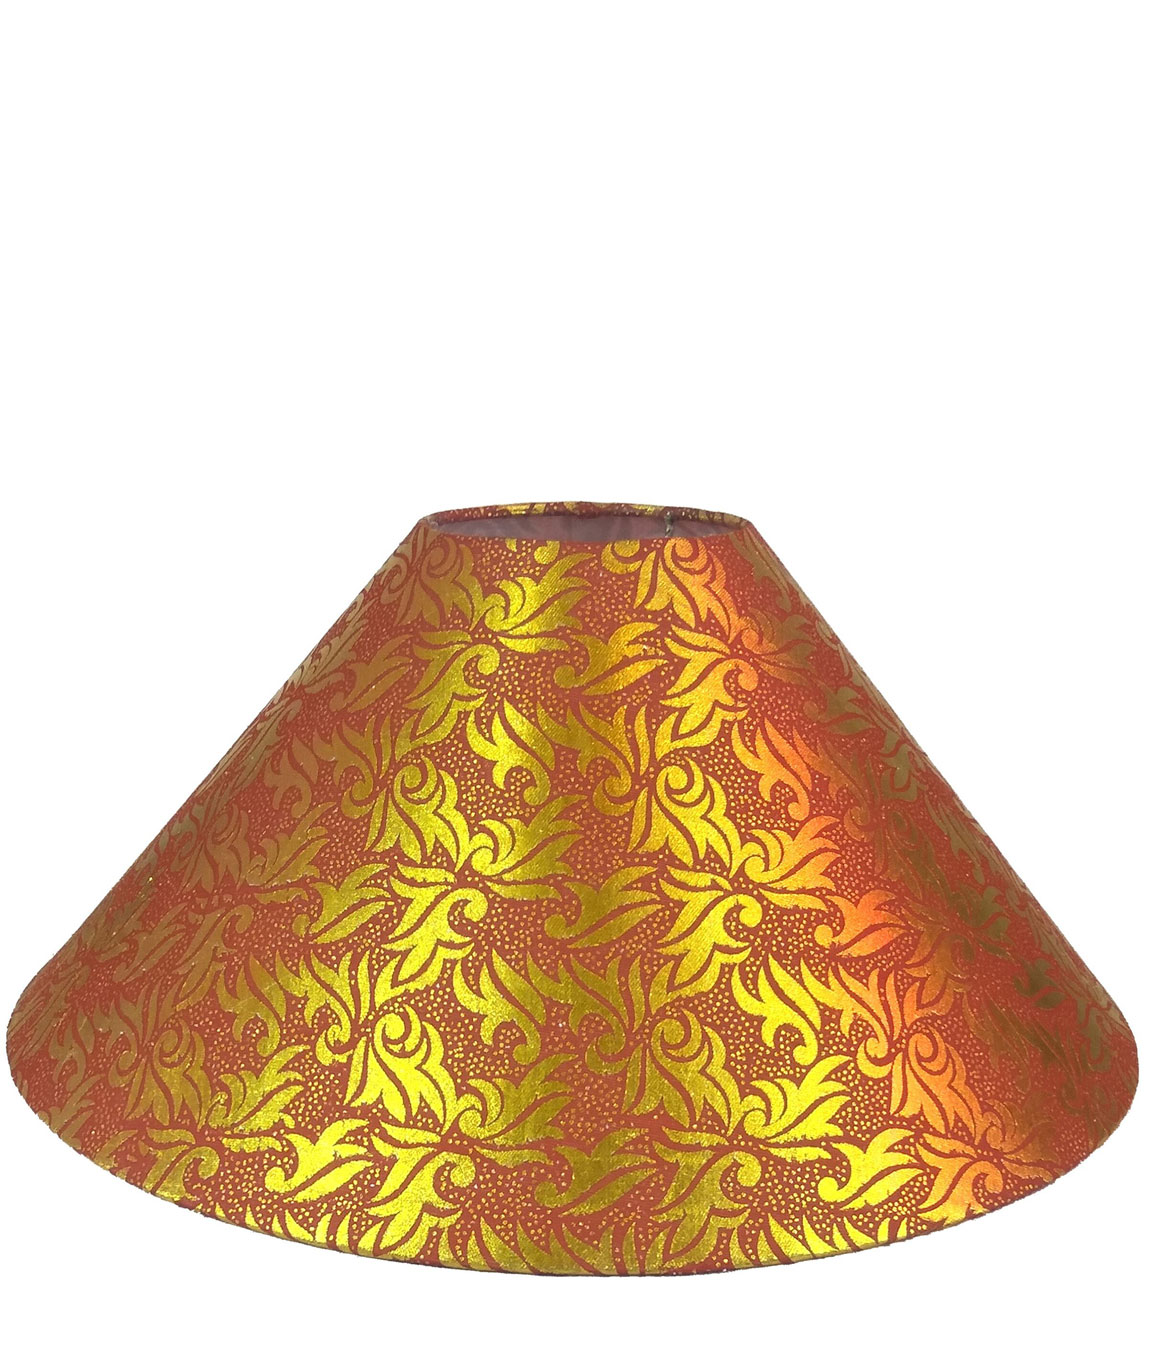 RDC 13 Inches Round Red Golden Designer Lamp Shade for Lamp